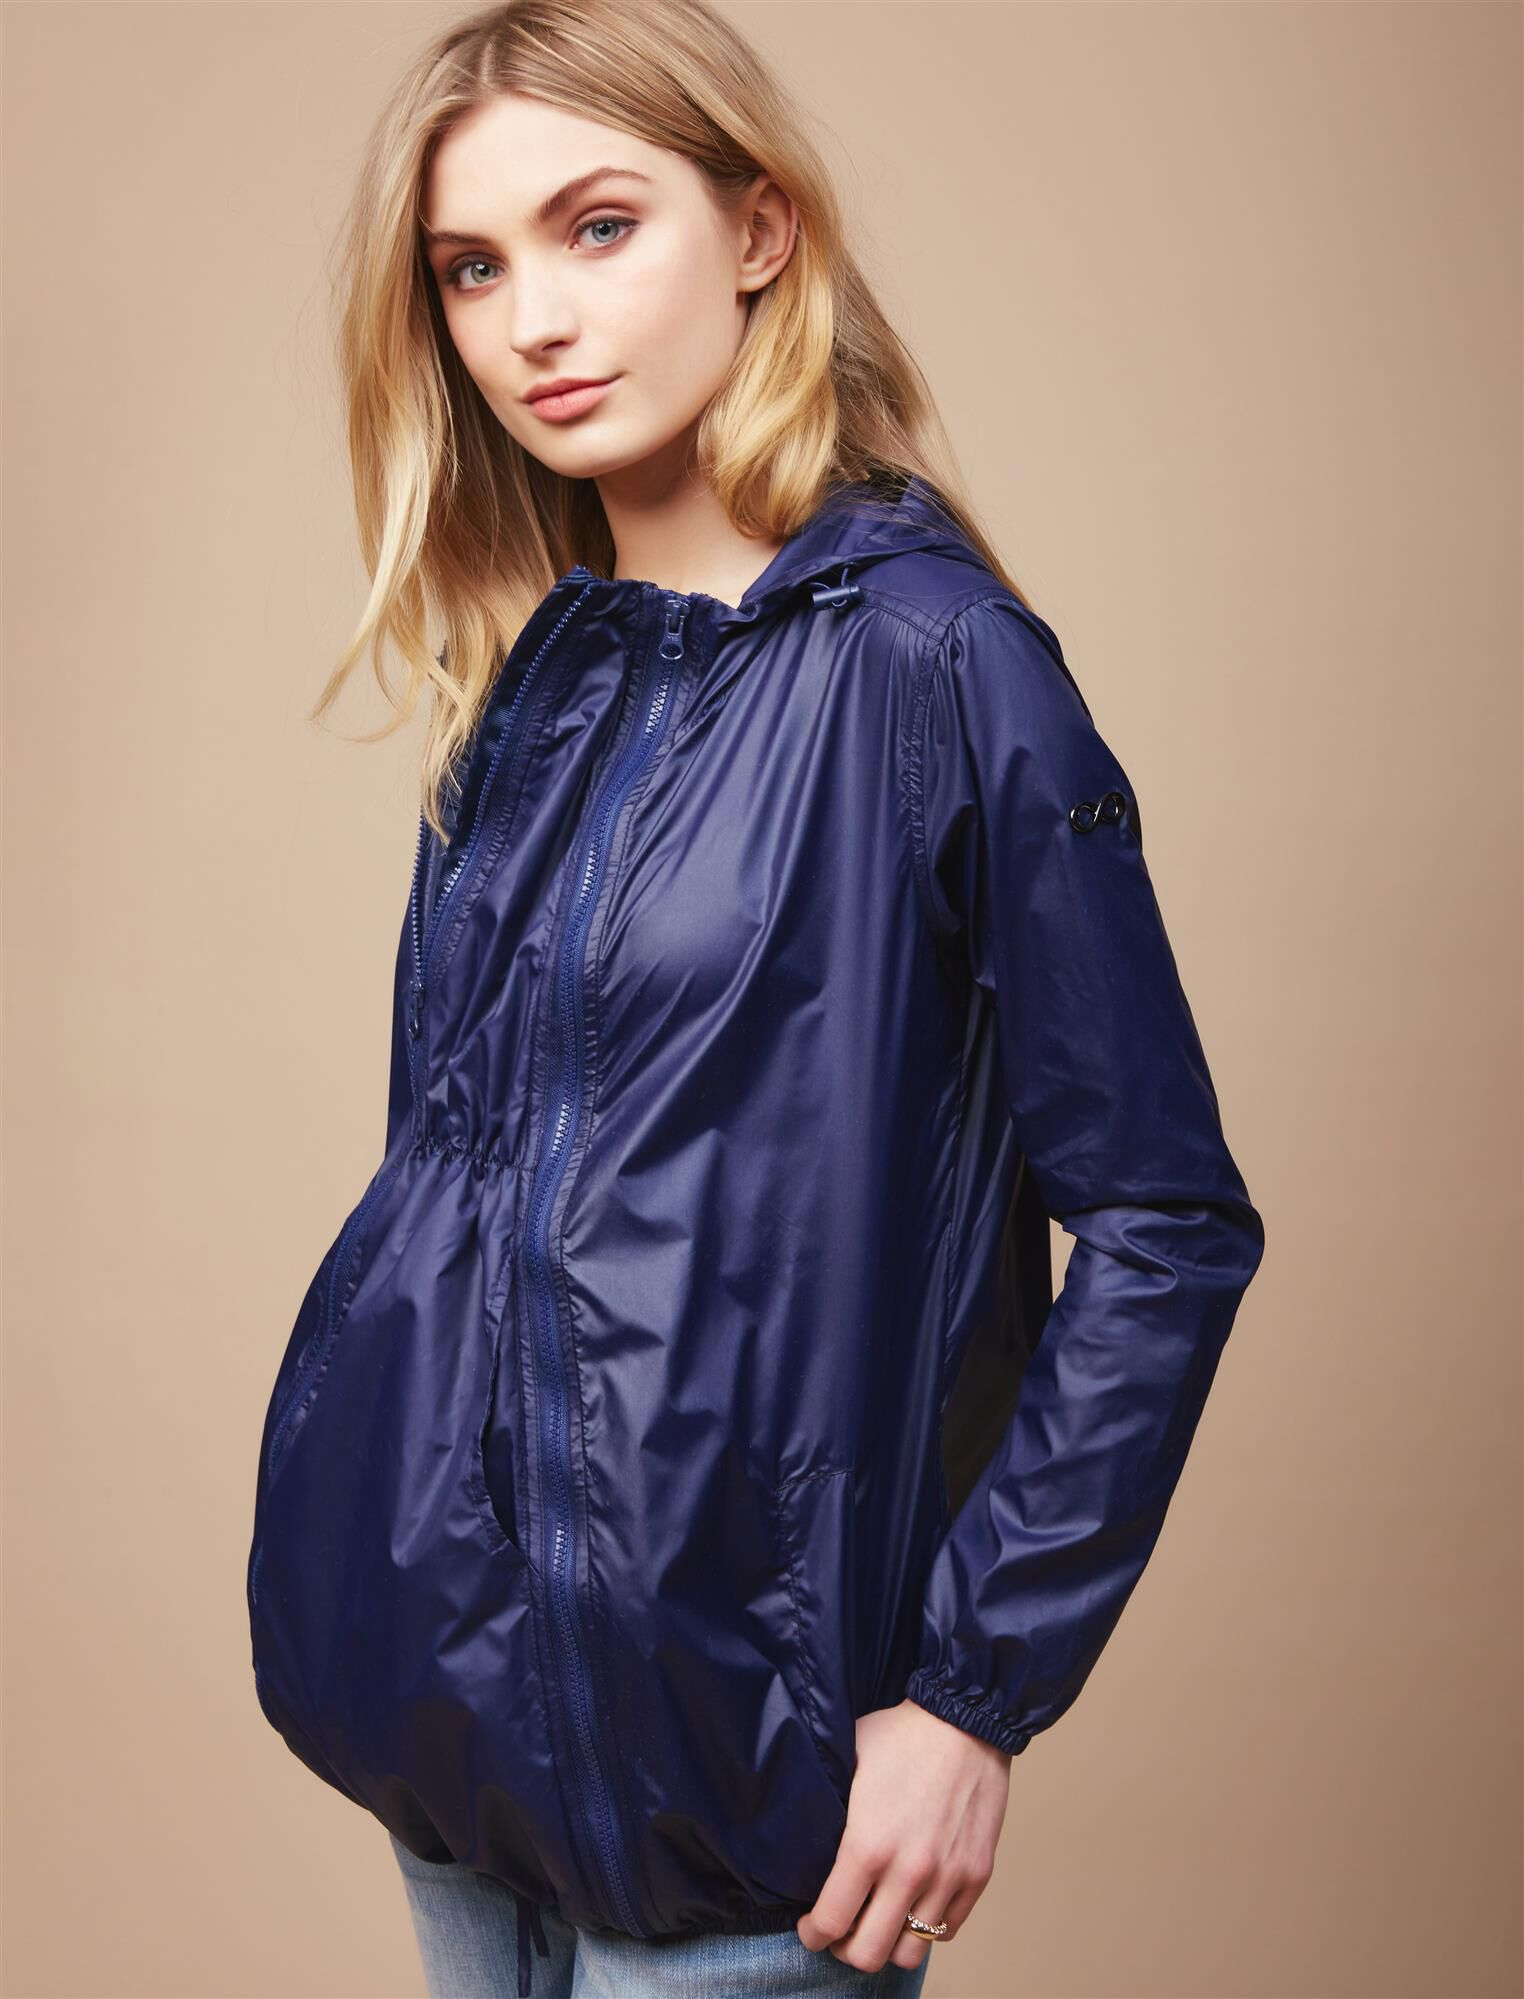 Modern Eternity 3 in 1 Drawstring Maternity Jacket